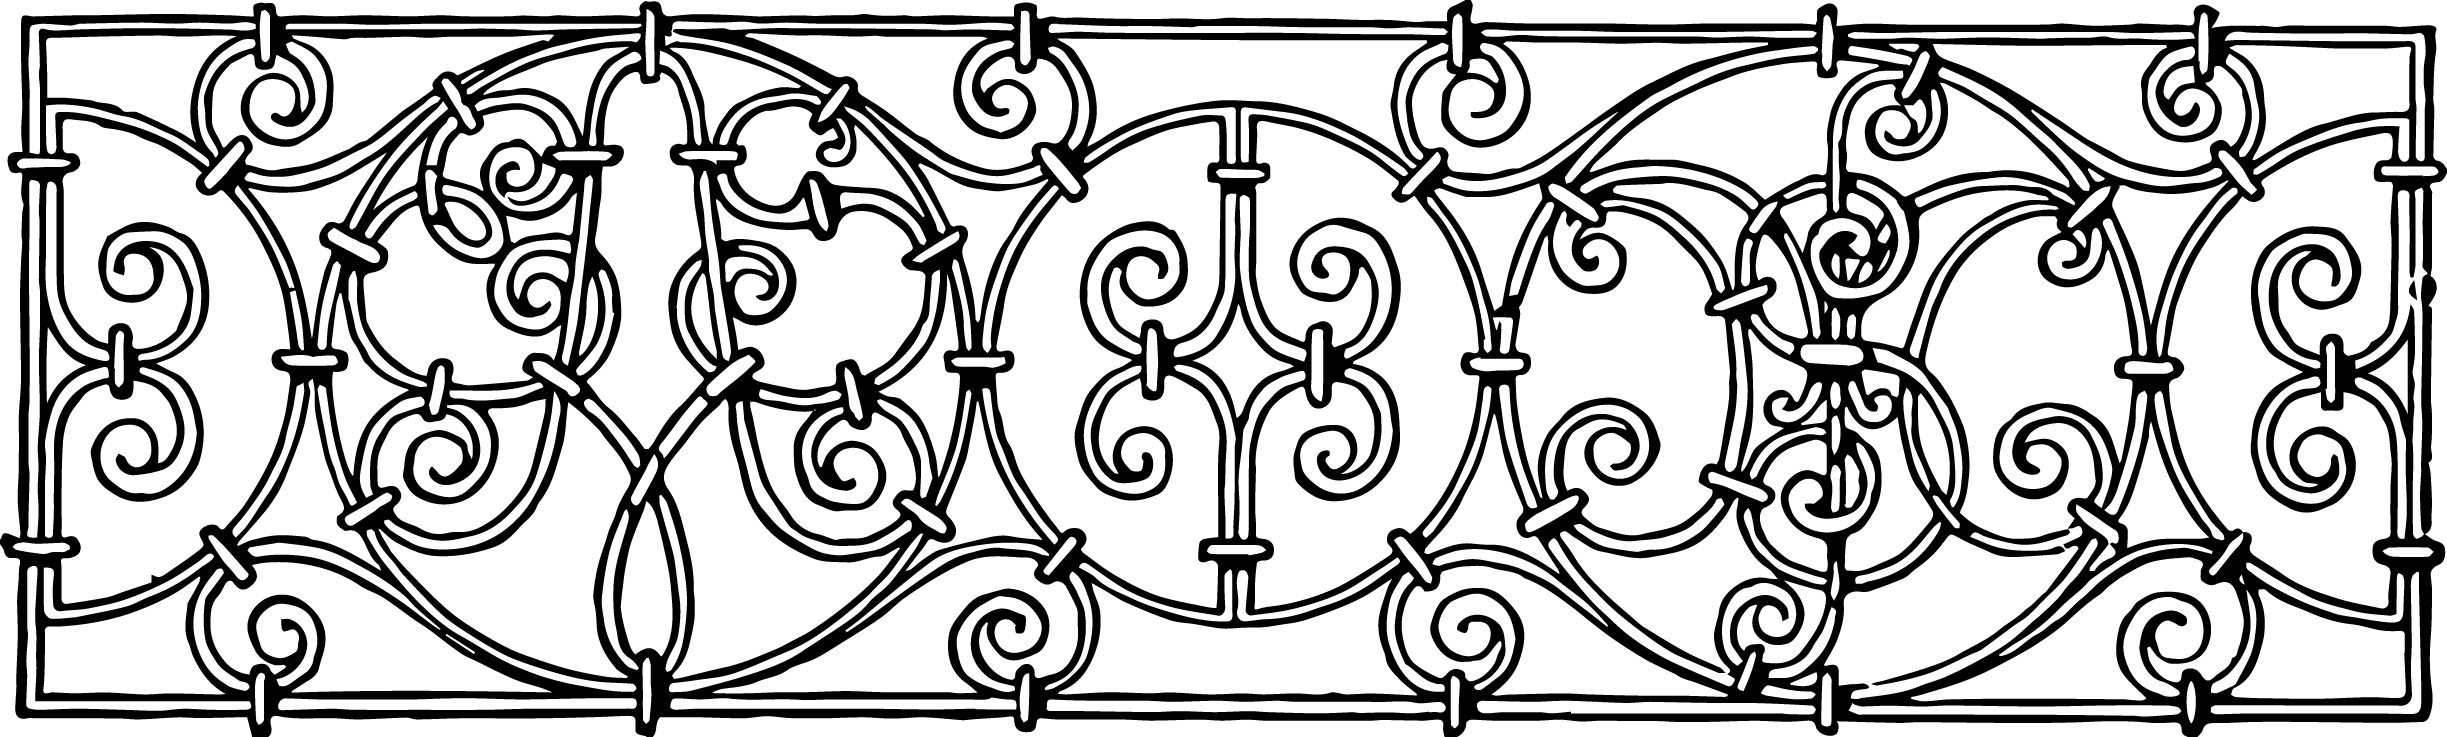 Free iron work clipart.